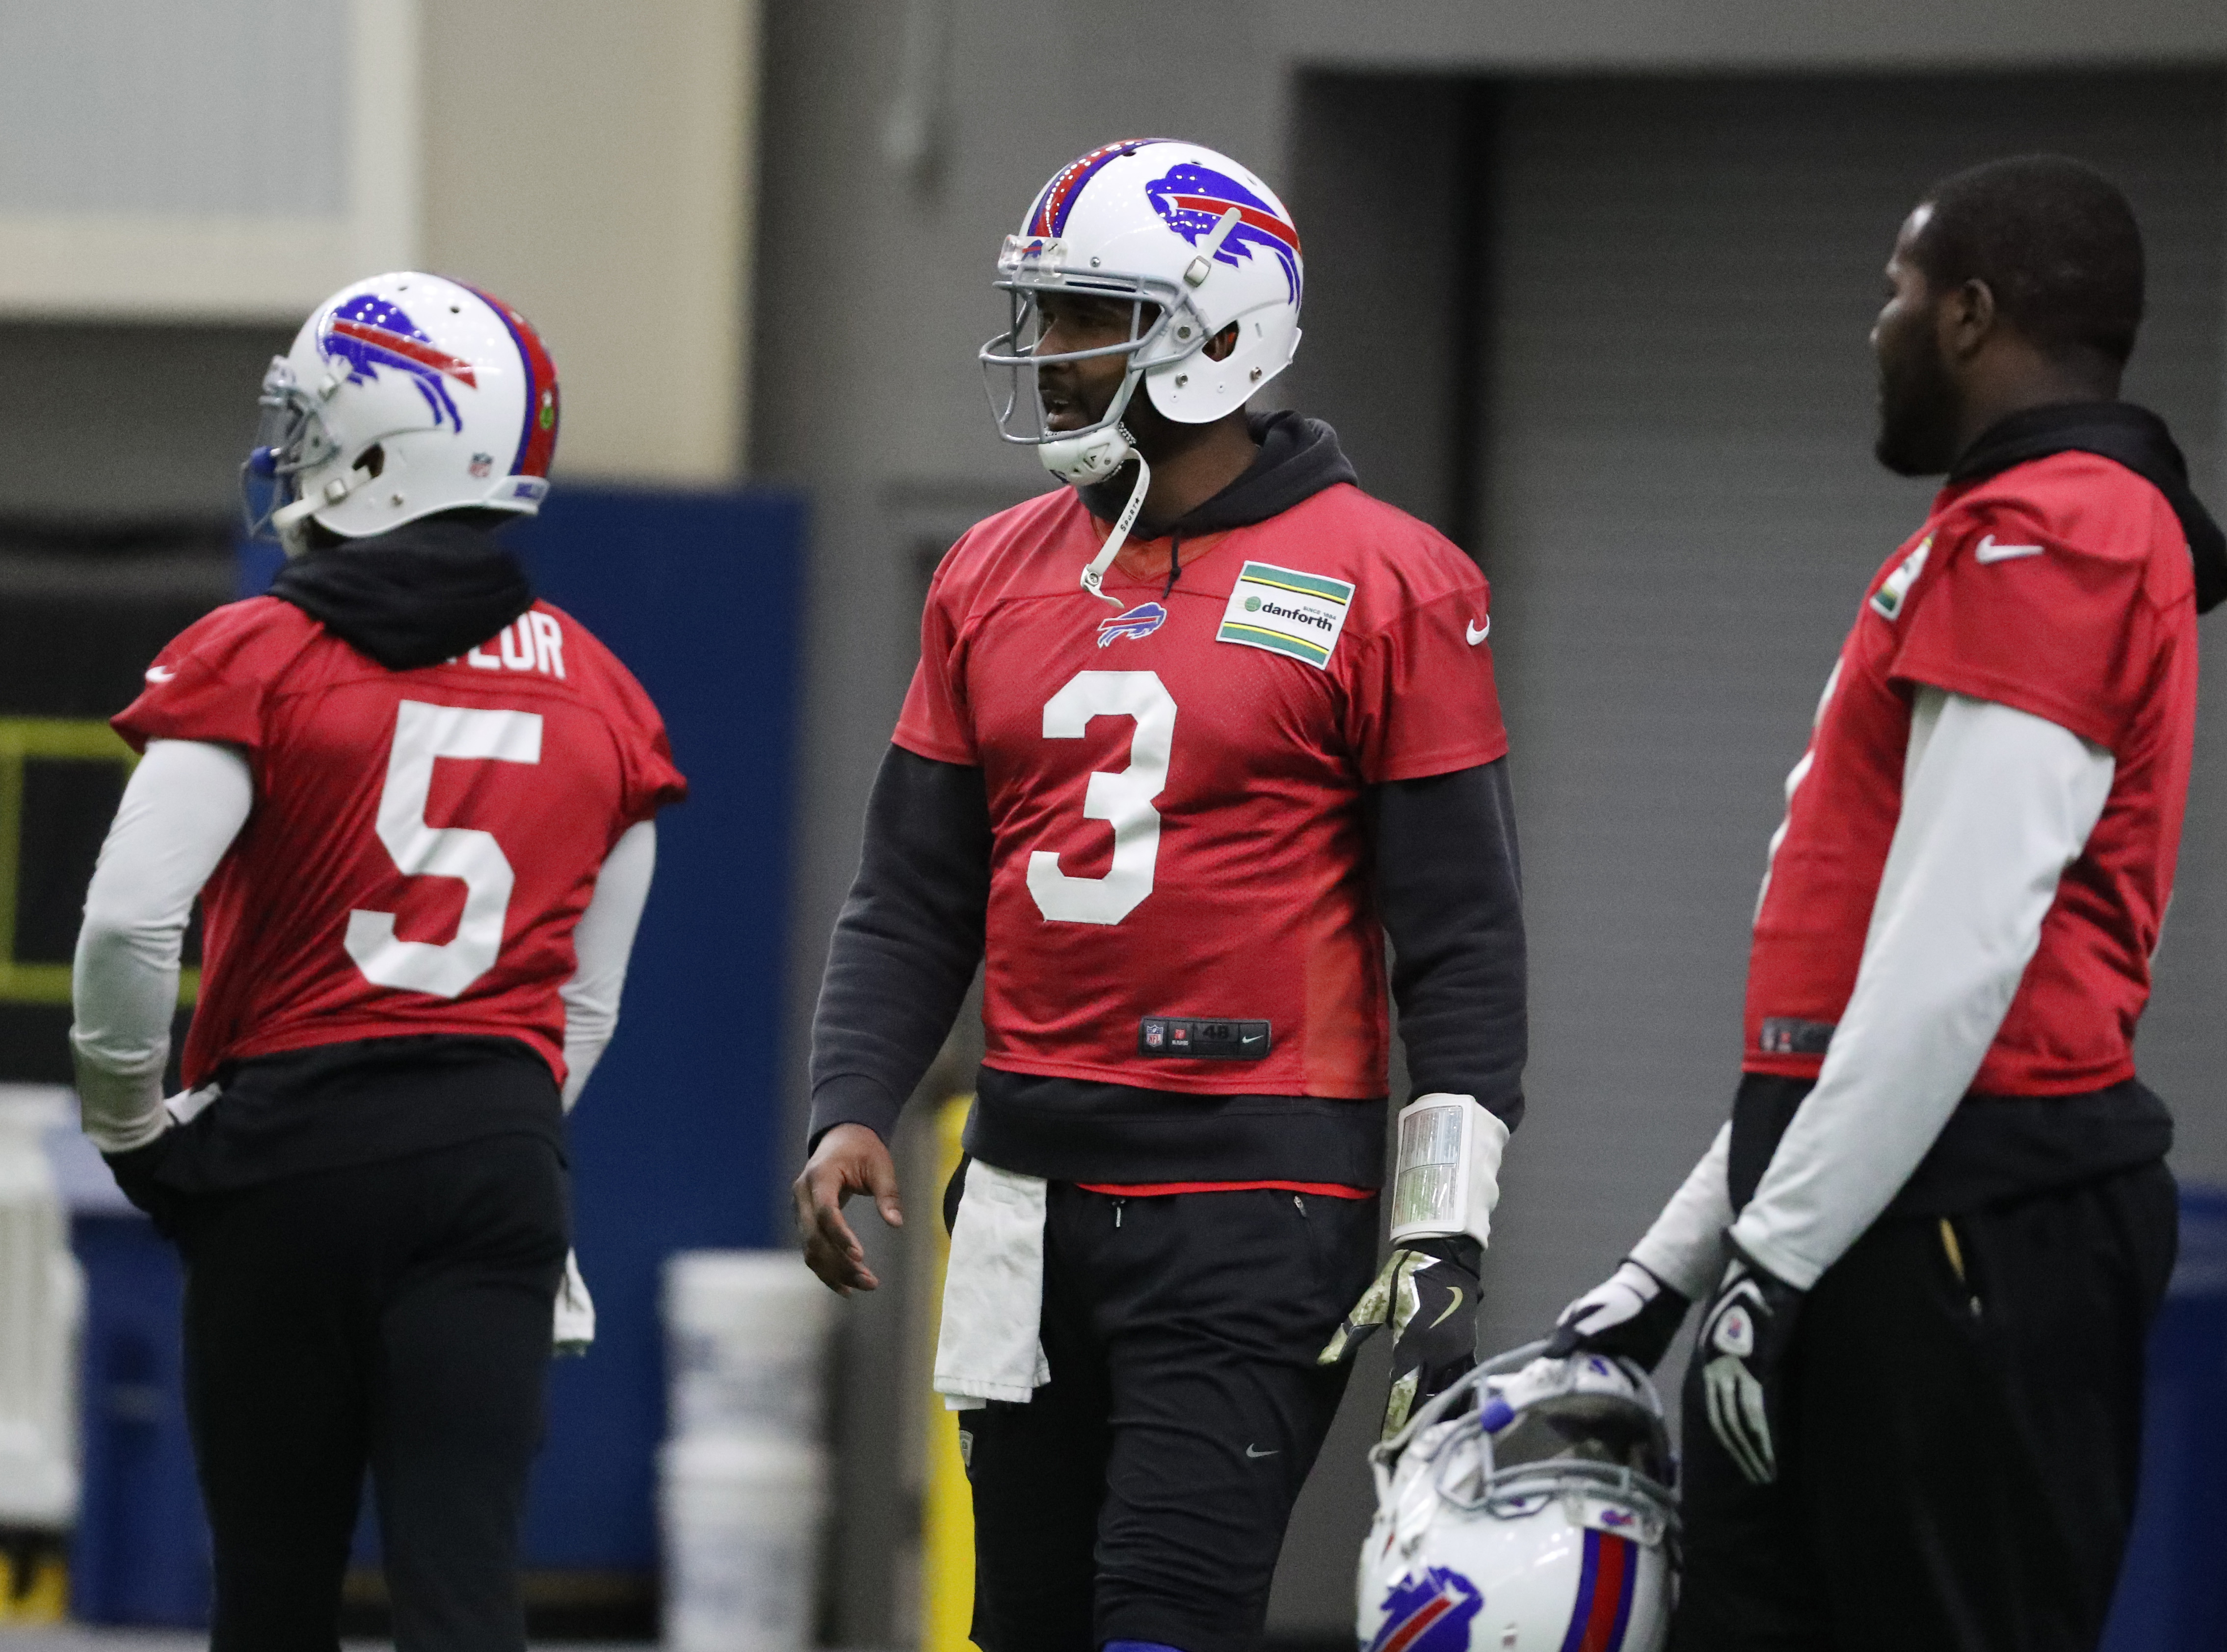 Buffalo Bills quarterback EJ Manuel (3) waits his turn to throw a pass during practice at ADPRO Sports Training Center in Orchard Park, N.Y. on Wednesday, Dec. 14, 2016.  (James P. McCoy/Buffalo News)